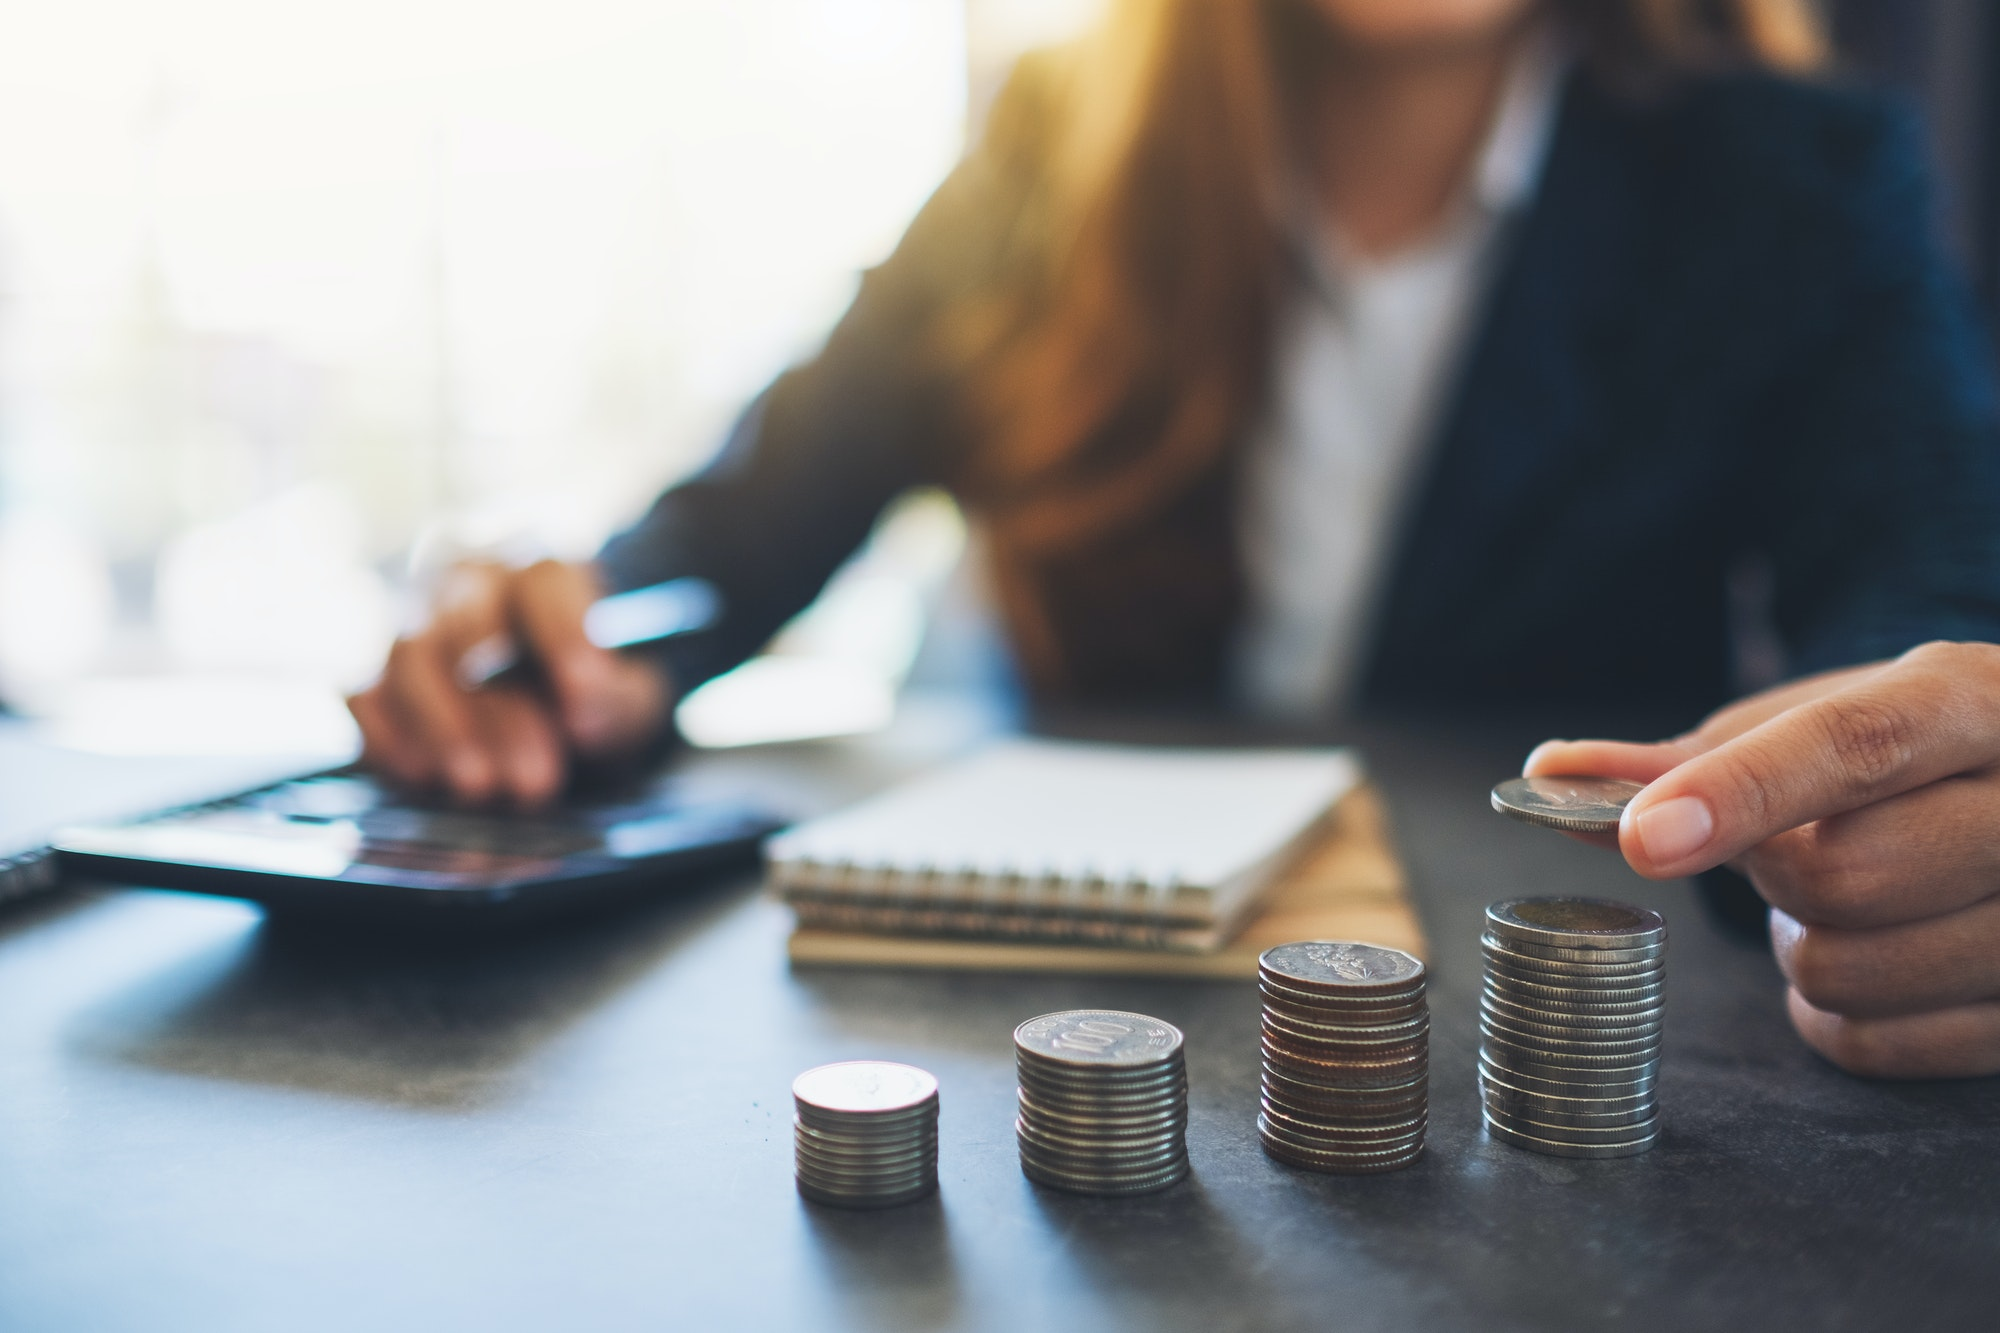 Businesswoman holding and stacking coins while calculating money on the table